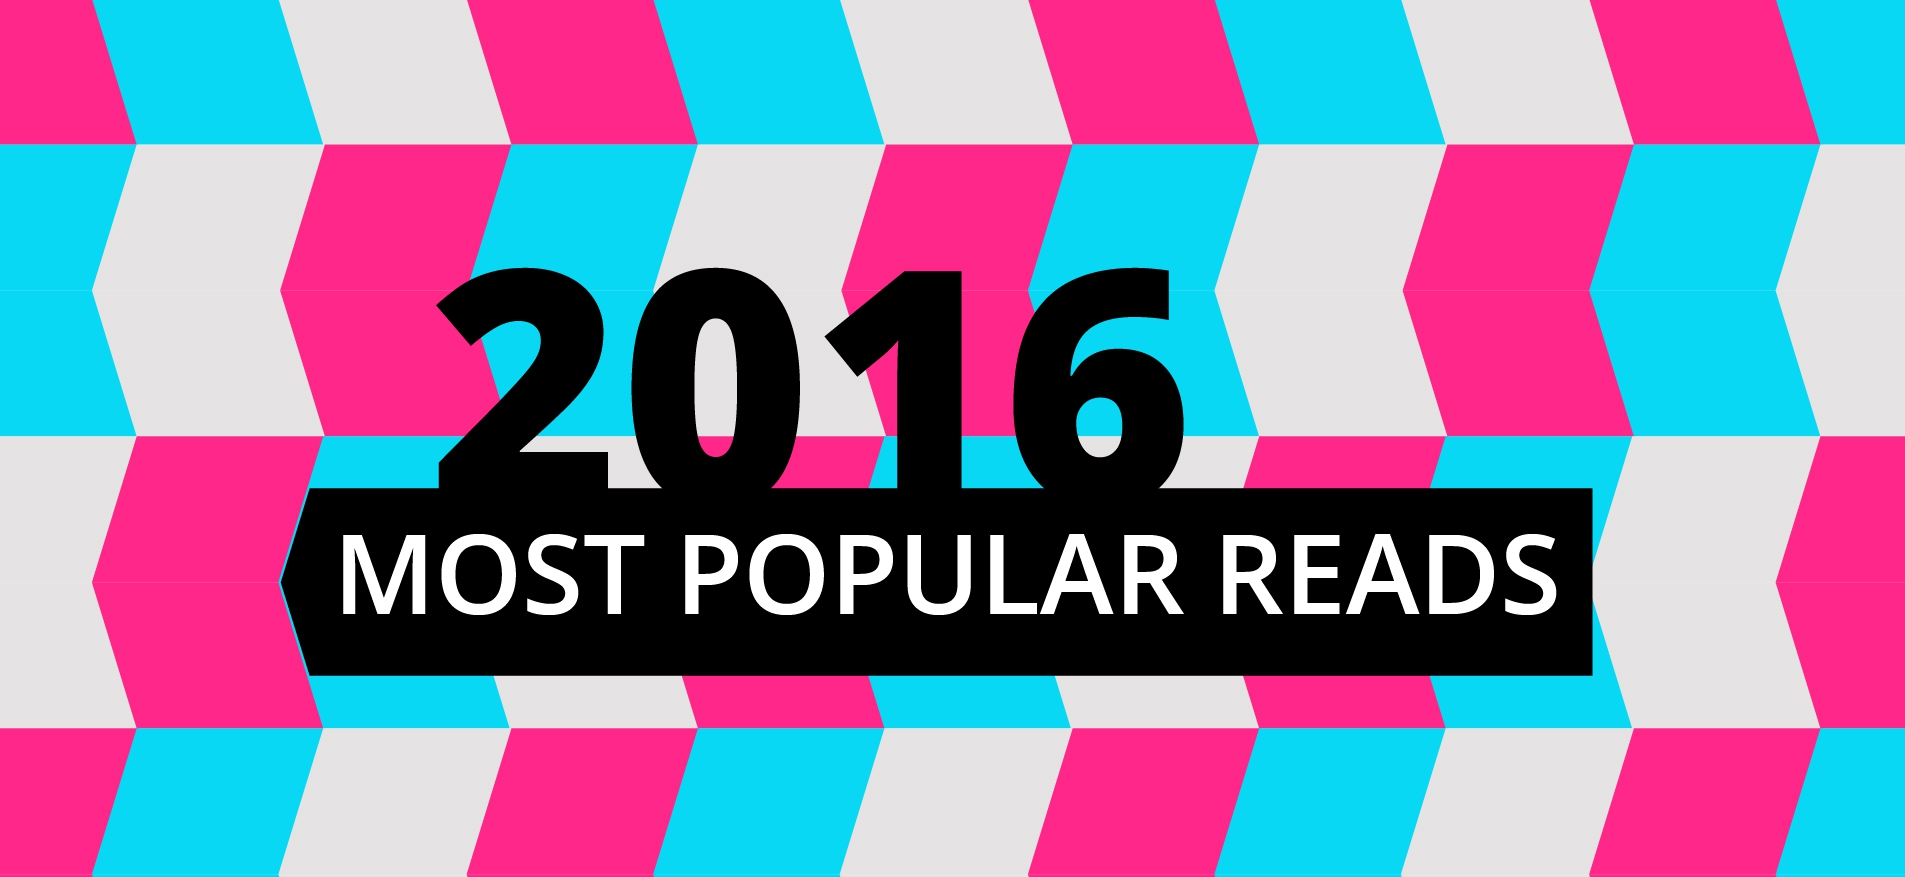 2016 Most Popular Reads